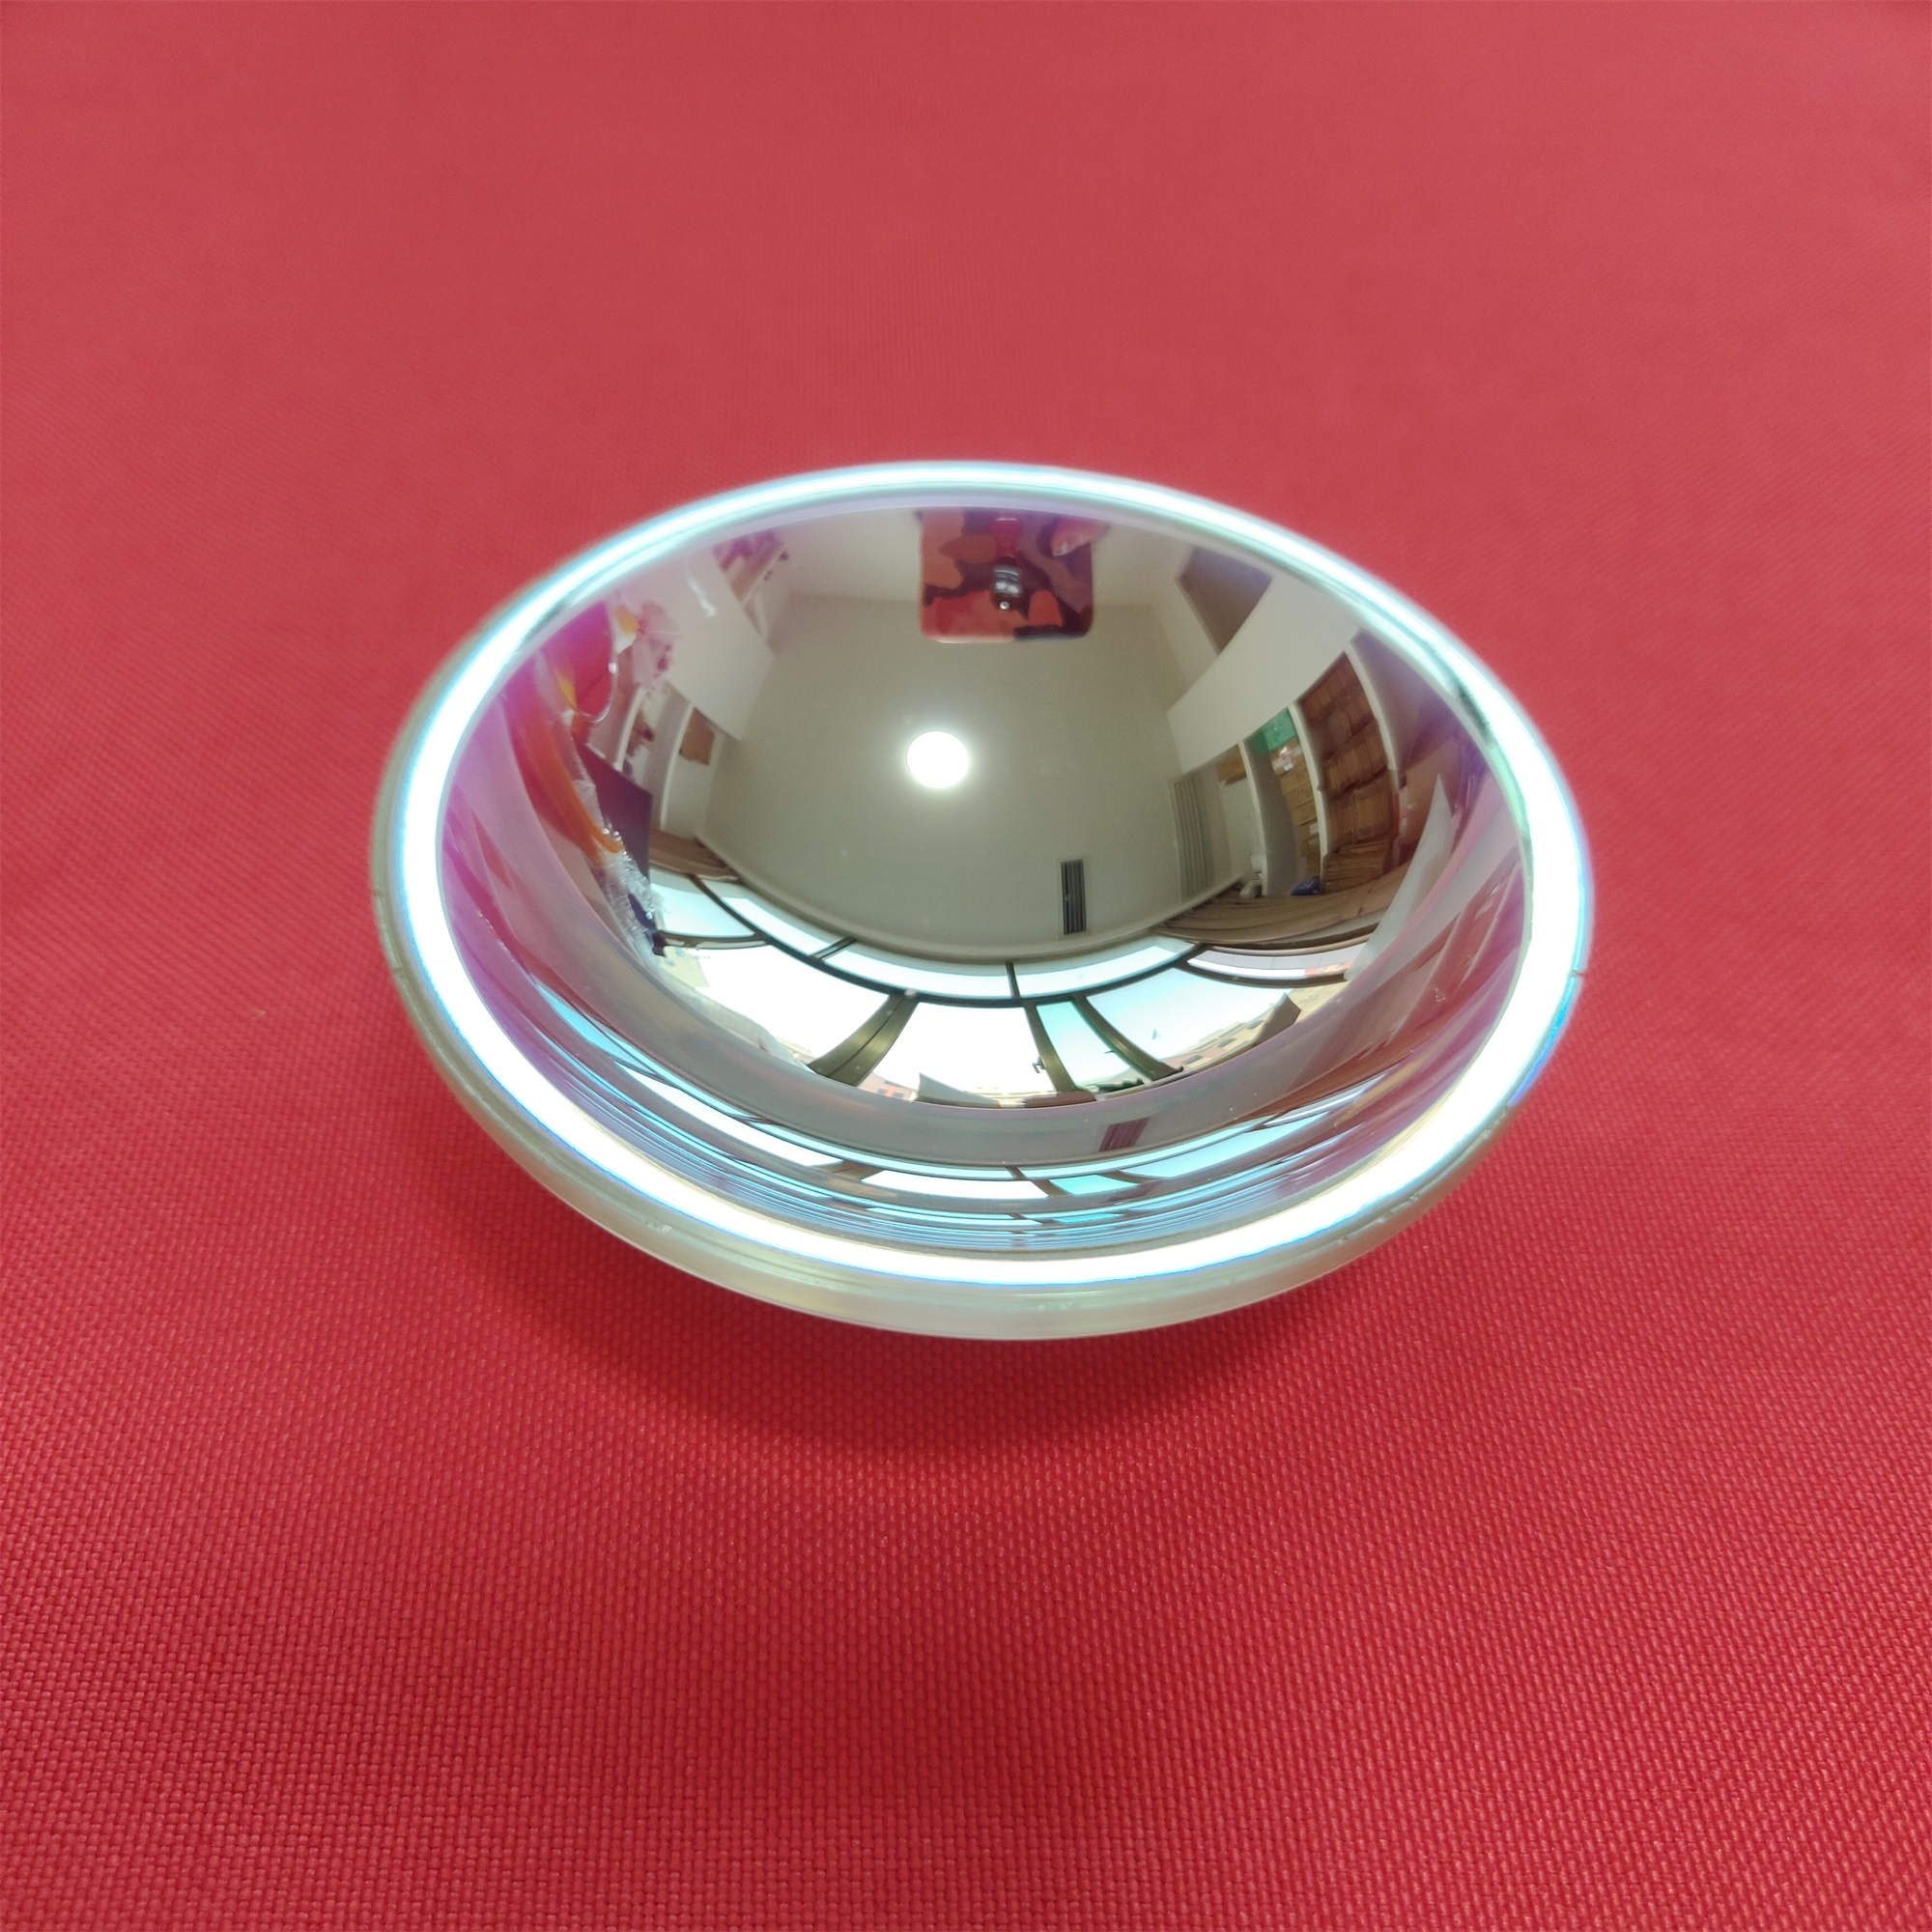 free shipping one piece DIY Projection kits parabolic reflector   projector reflective bowl 68mm